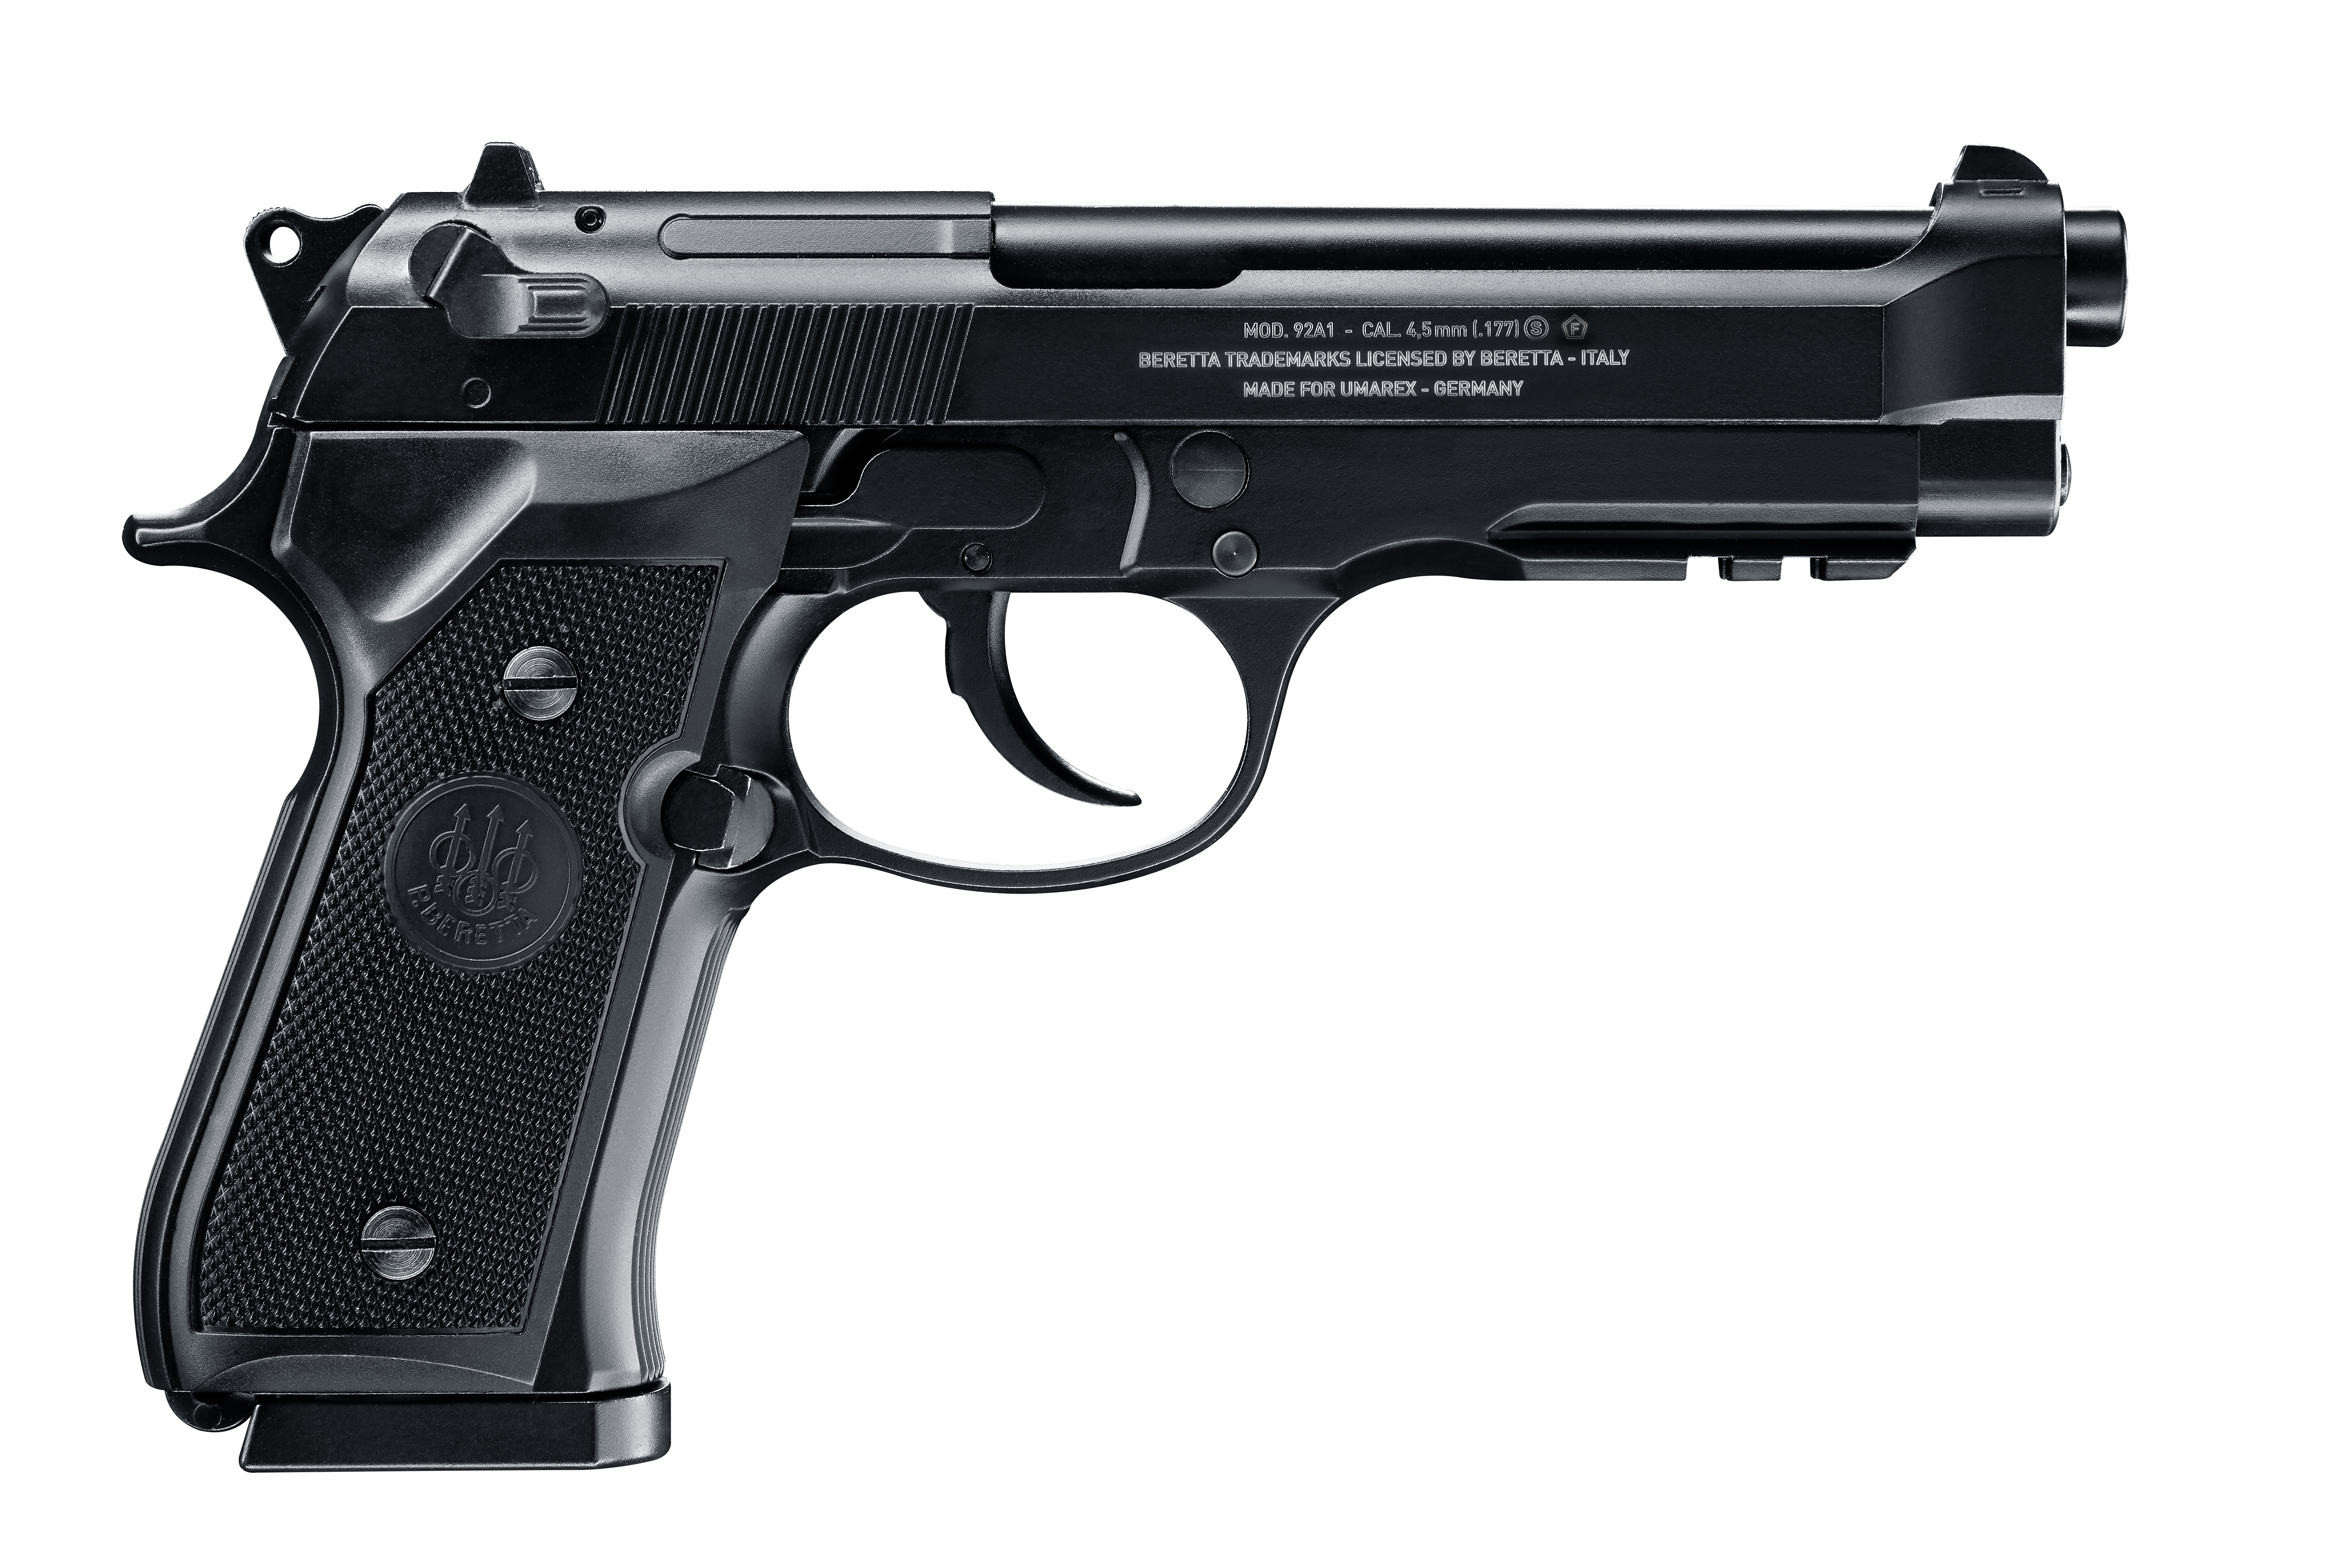 BERETTA (Umarex R) CO2 Airgun Replica MOD. 92 A1